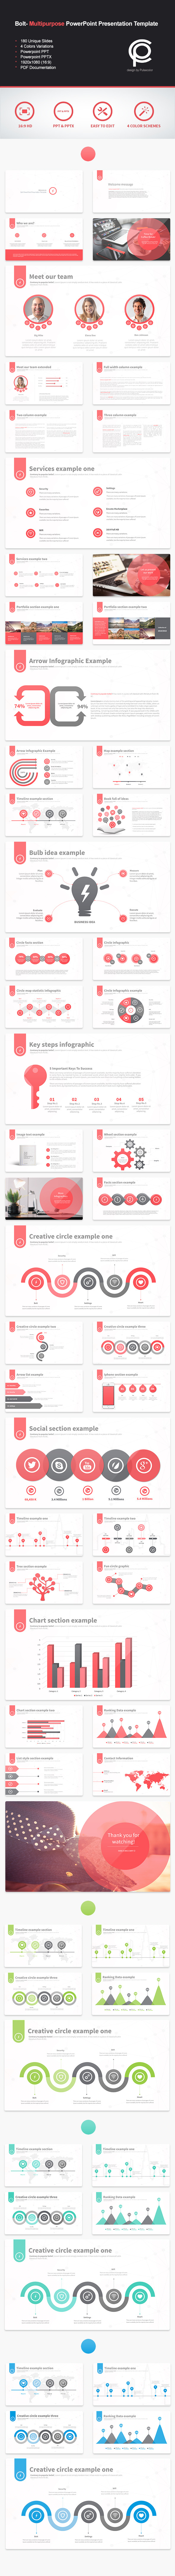 GraphicRiver Bolt Multipurpose PowerPoint Presentation 10740558